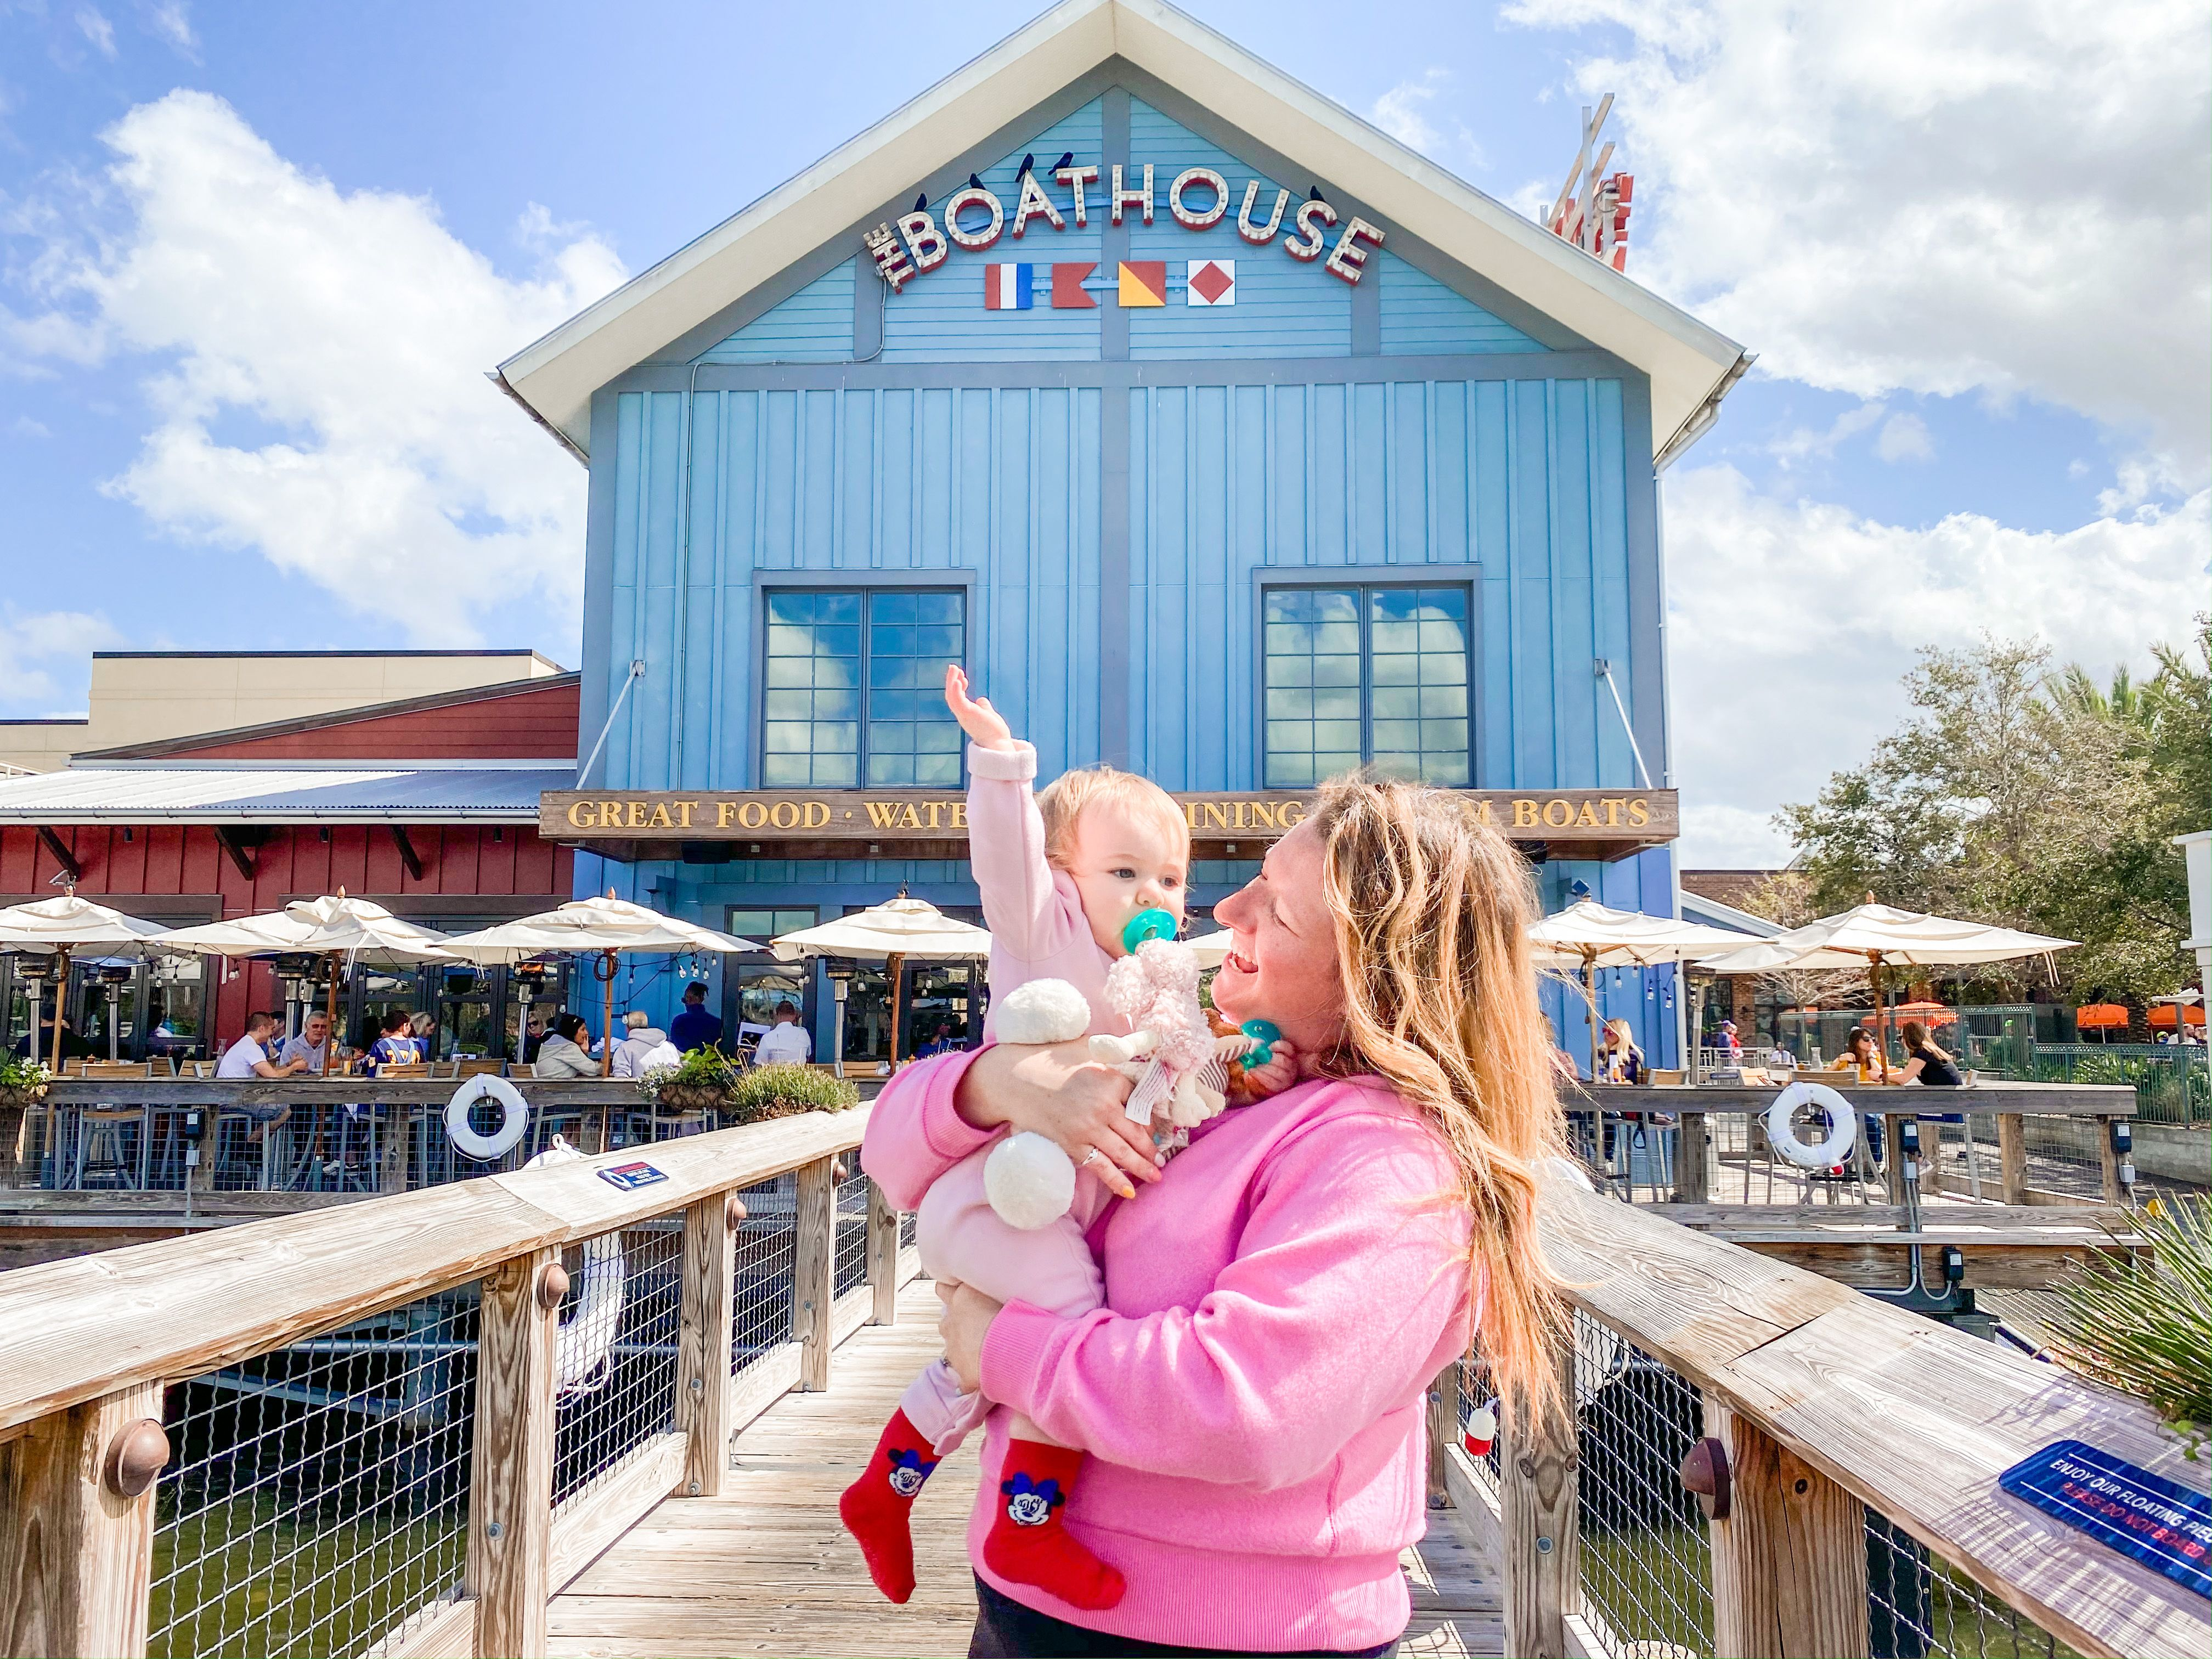 Disney Springs Boathouse Review and Gluten Free Options in